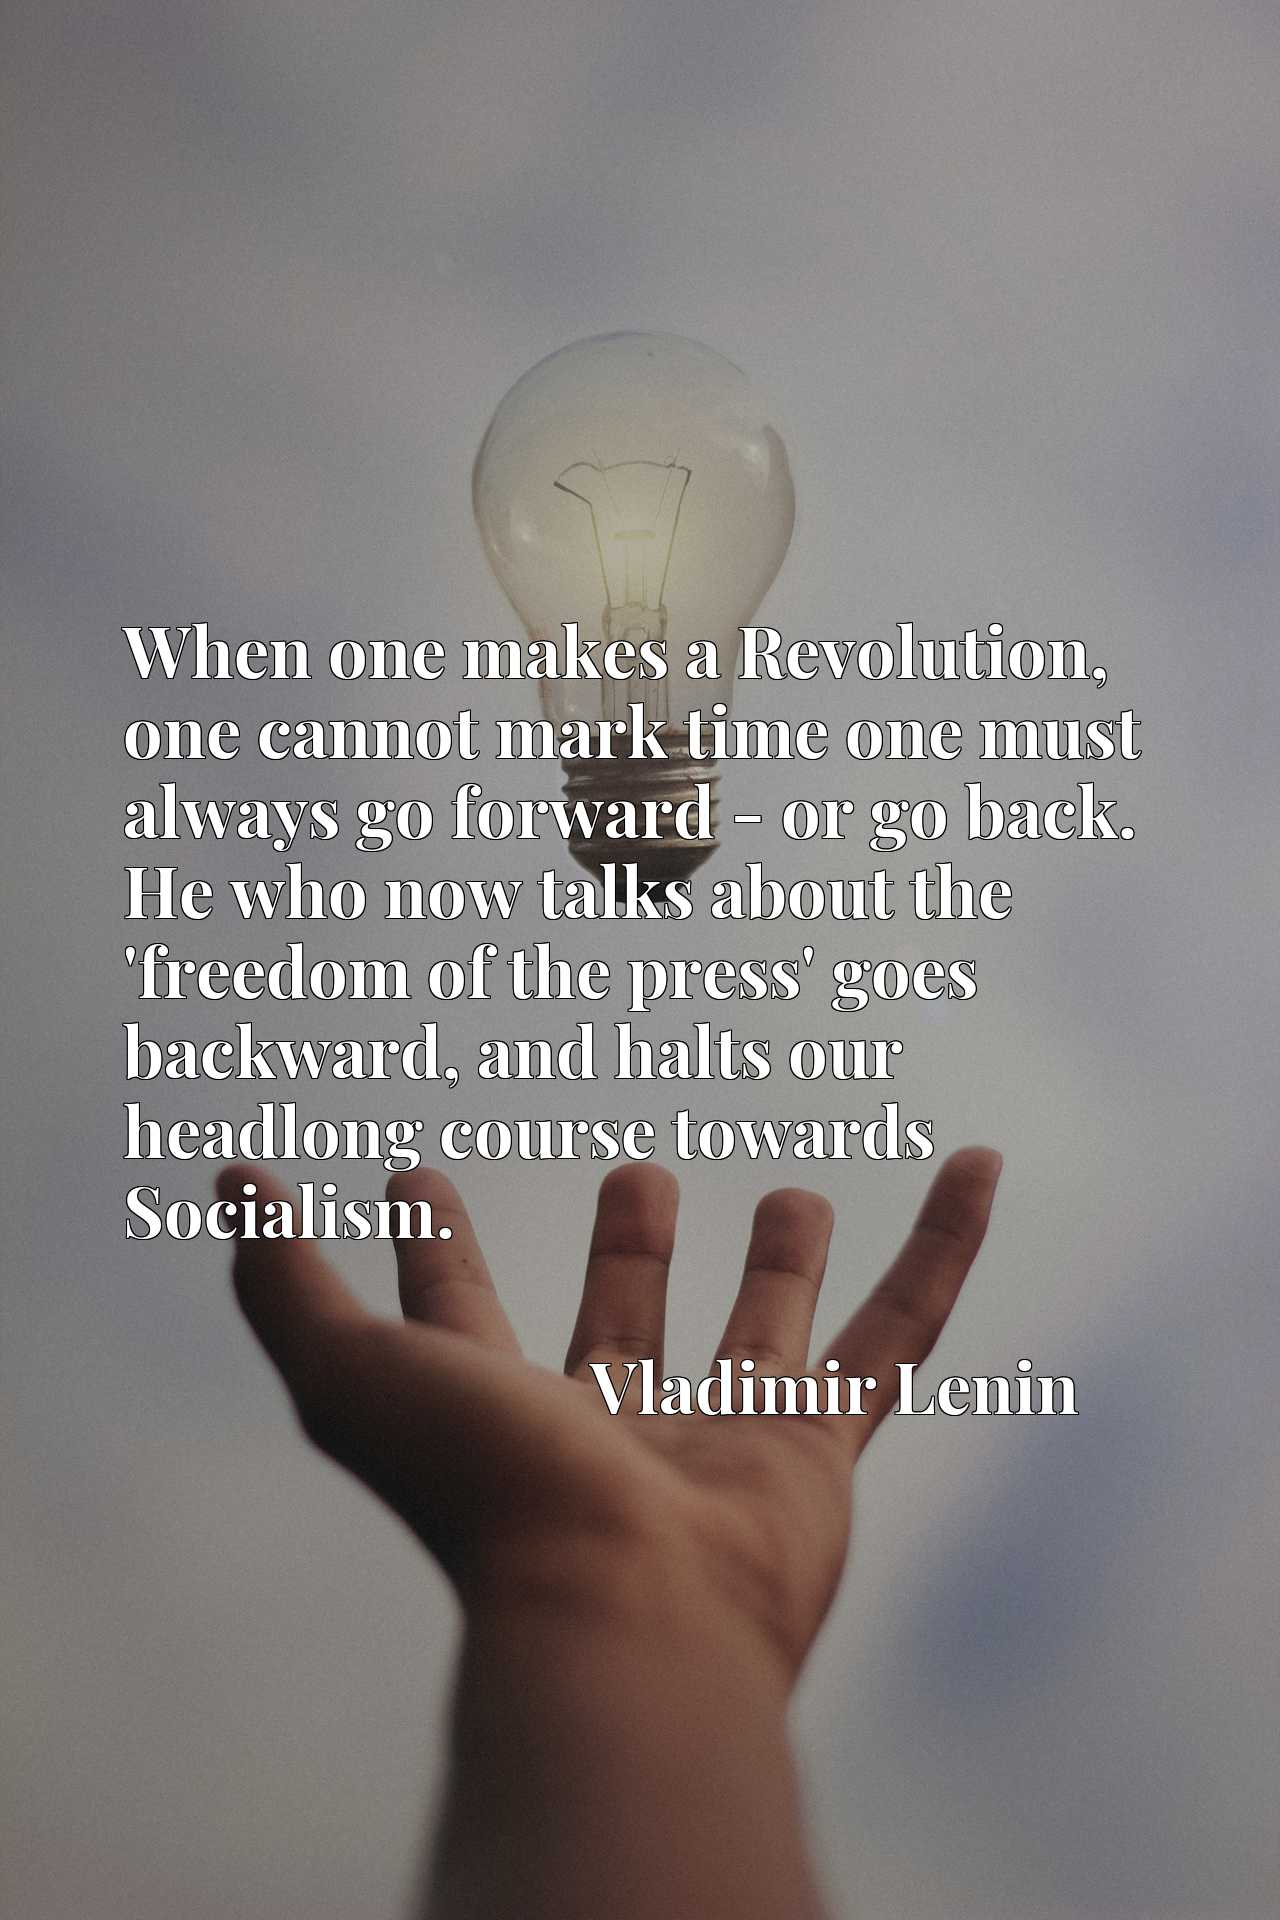 When one makes a Revolution, one cannot mark time one must always go forward - or go back. He who now talks about the 'freedom of the press' goes backward, and halts our headlong course towards Socialism.